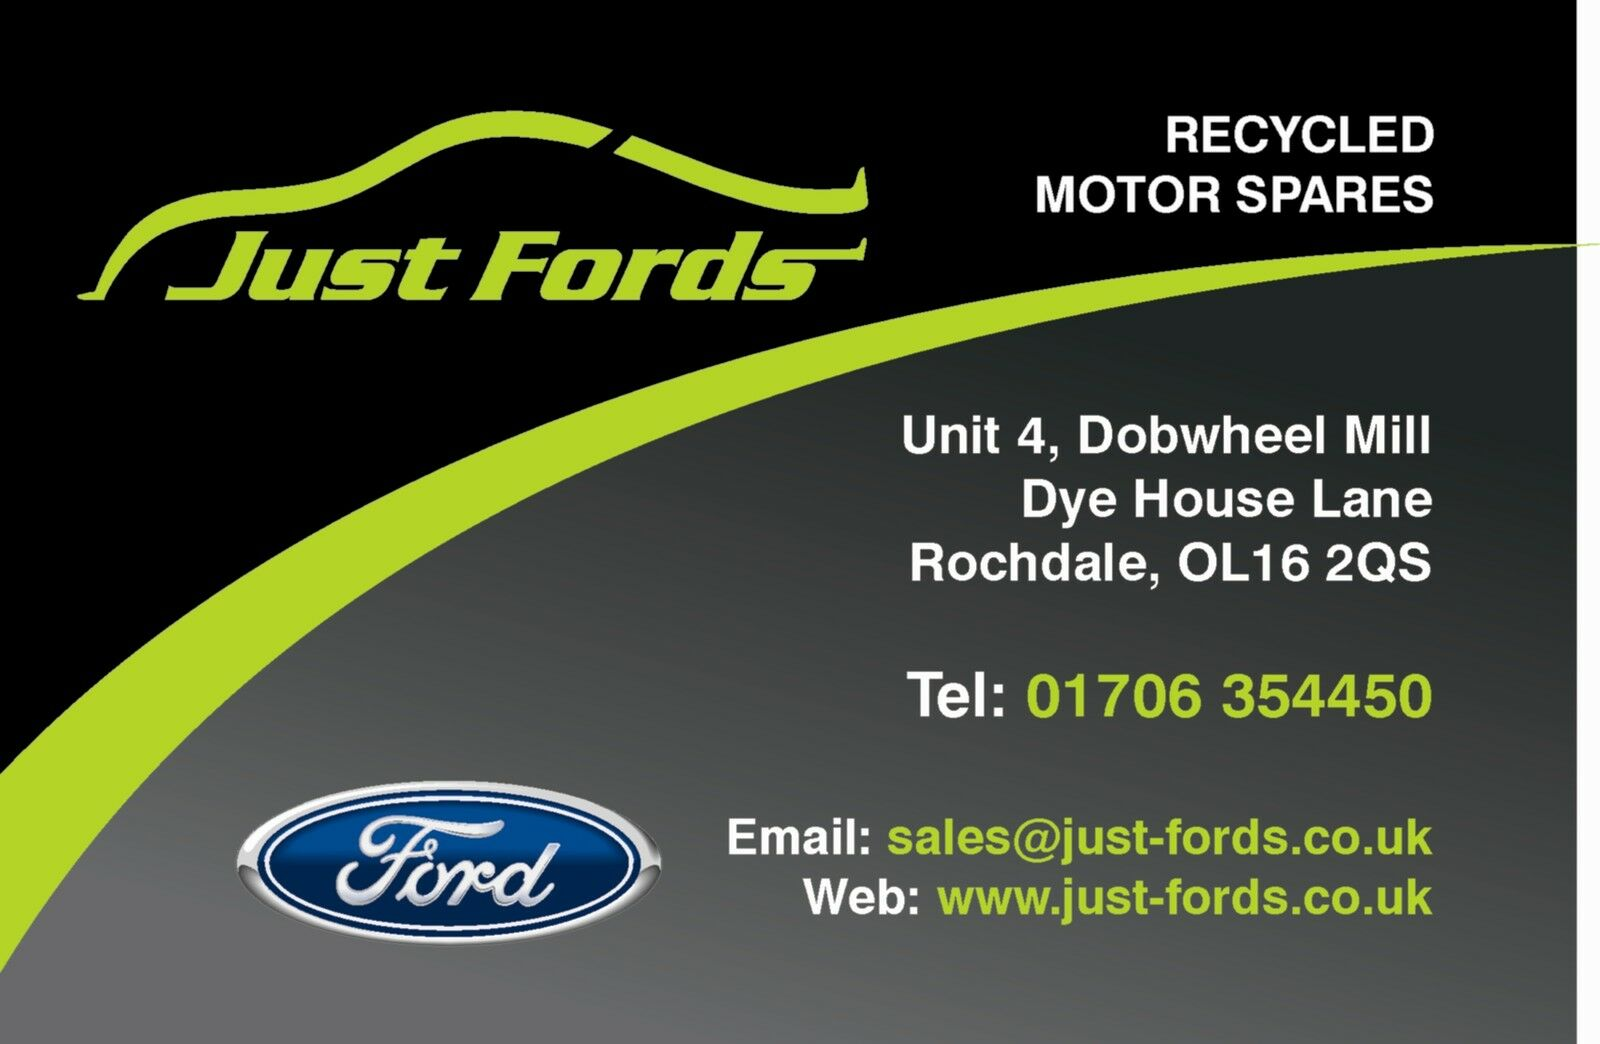 JUST FORDS PARTS